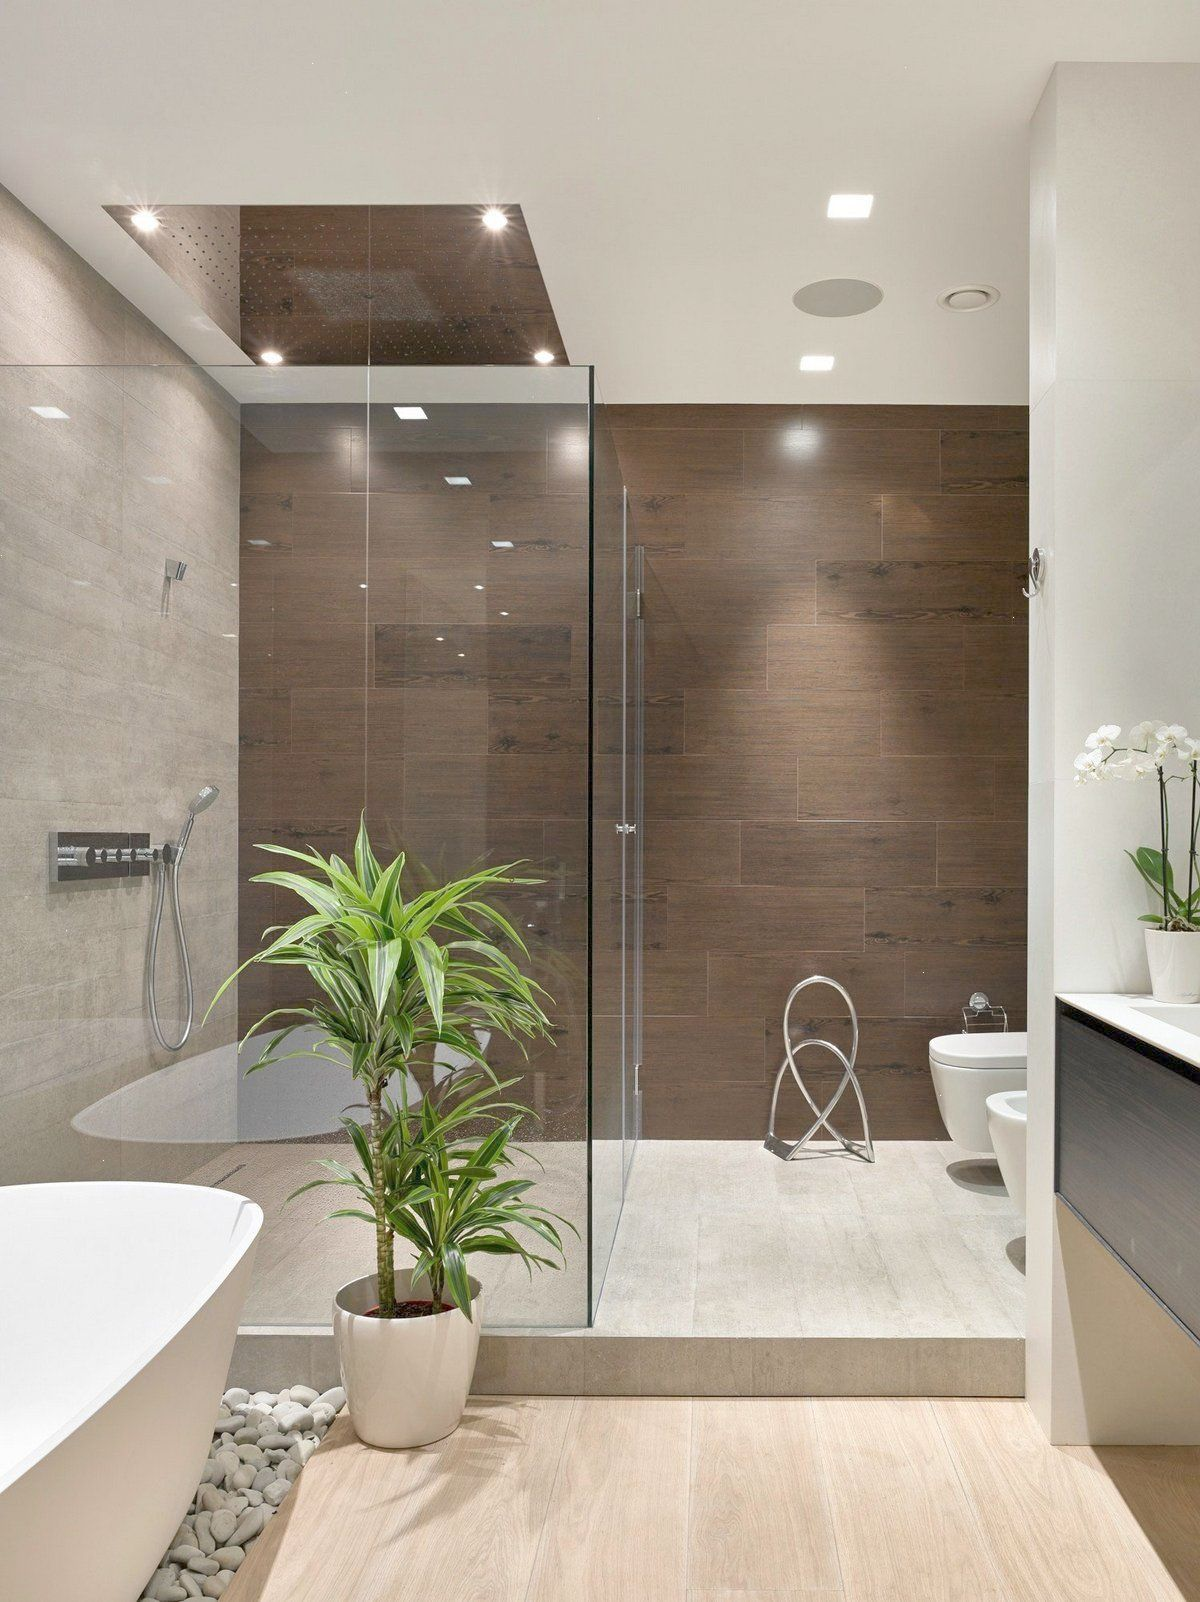 Merveilleux Modern Bathroom Design By Architect Alexander Fedorov